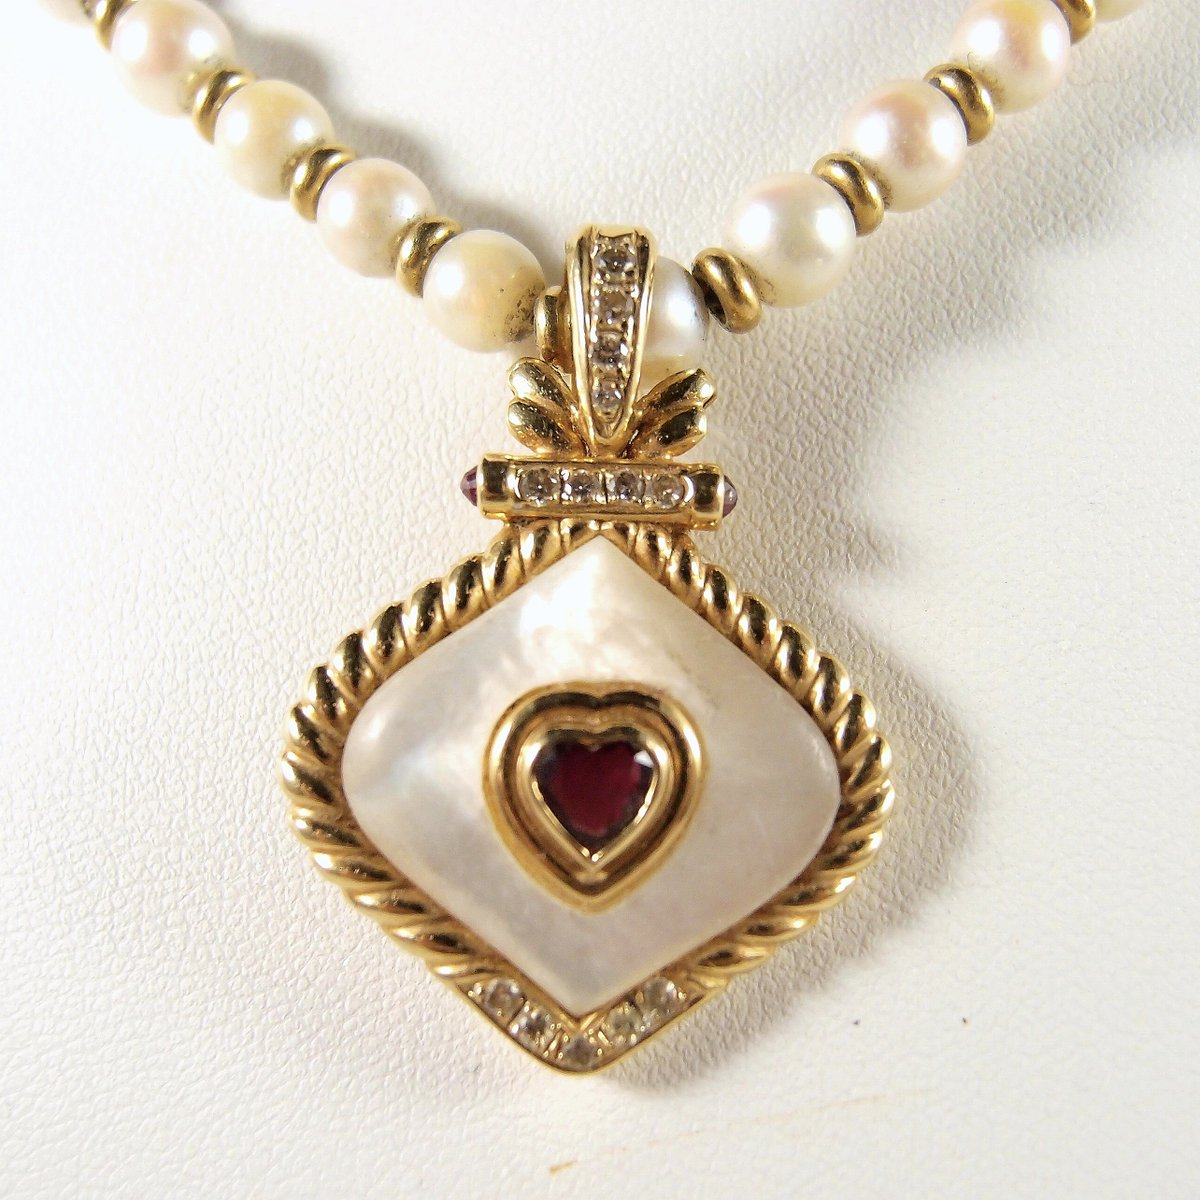 Nothing equals elegance with a pearl but another pearl #pearlsofinstagram  #EstatePearl necklace with alternating #18KsolidGold beads #RemovablePendant Ruby and diamond http://ow.ly/gJ9j30pu5RL pic.twitter.com/9wF6MKFLNq